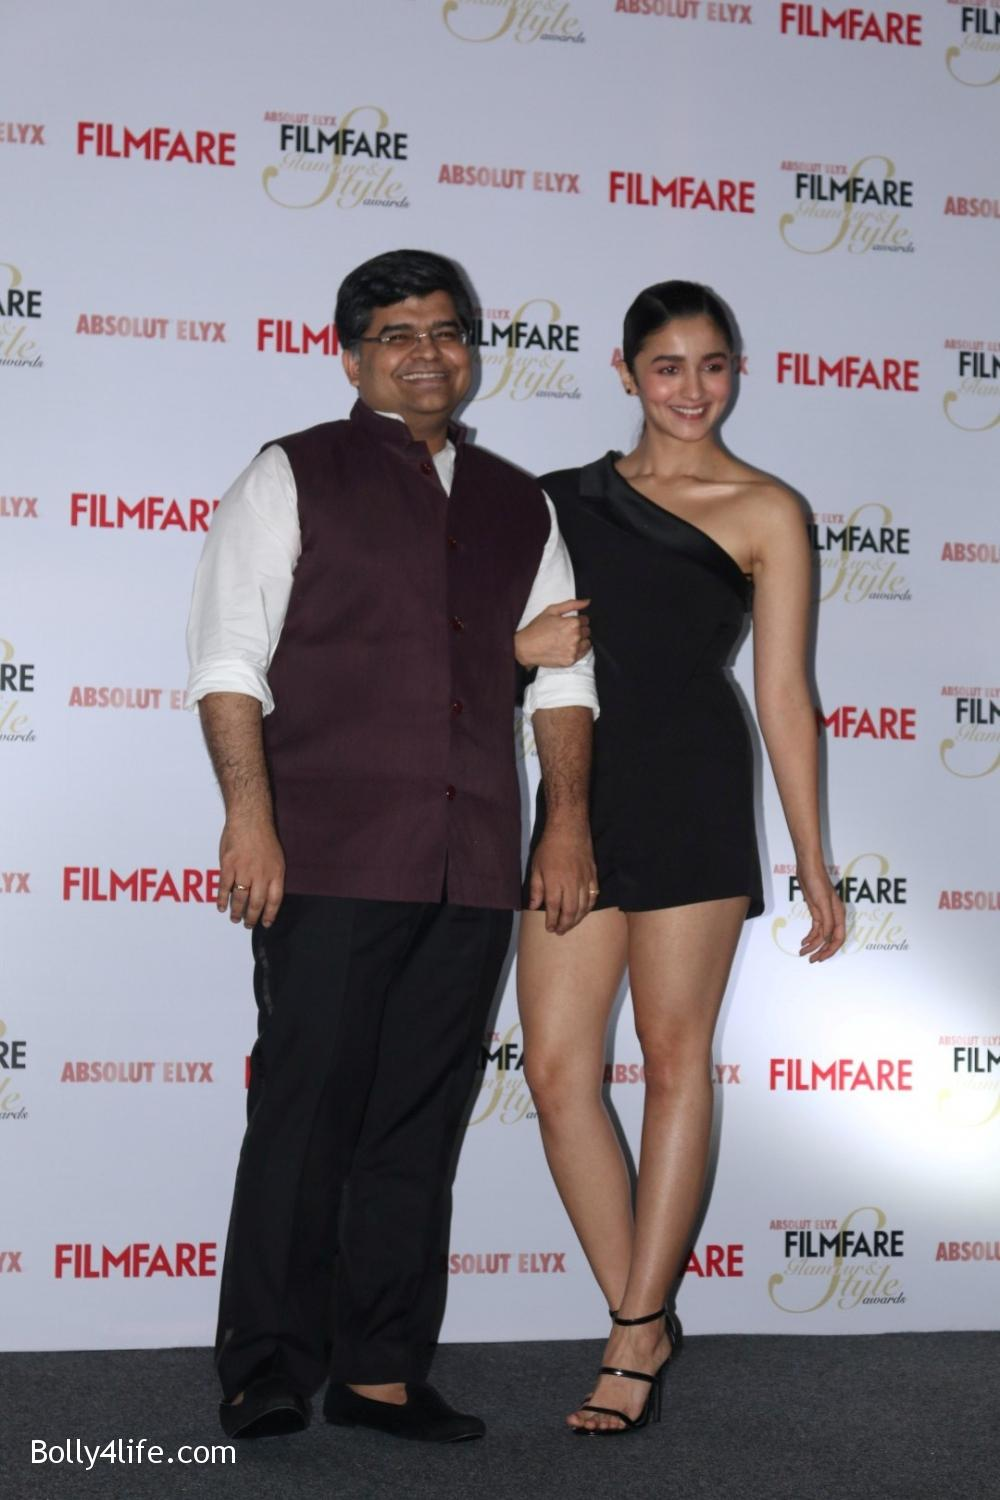 Alia-Bhatt-during-the-Absolut-Elyx-Filmfare-Glamour-and-Style-Awards-cover-launch-38.jpg